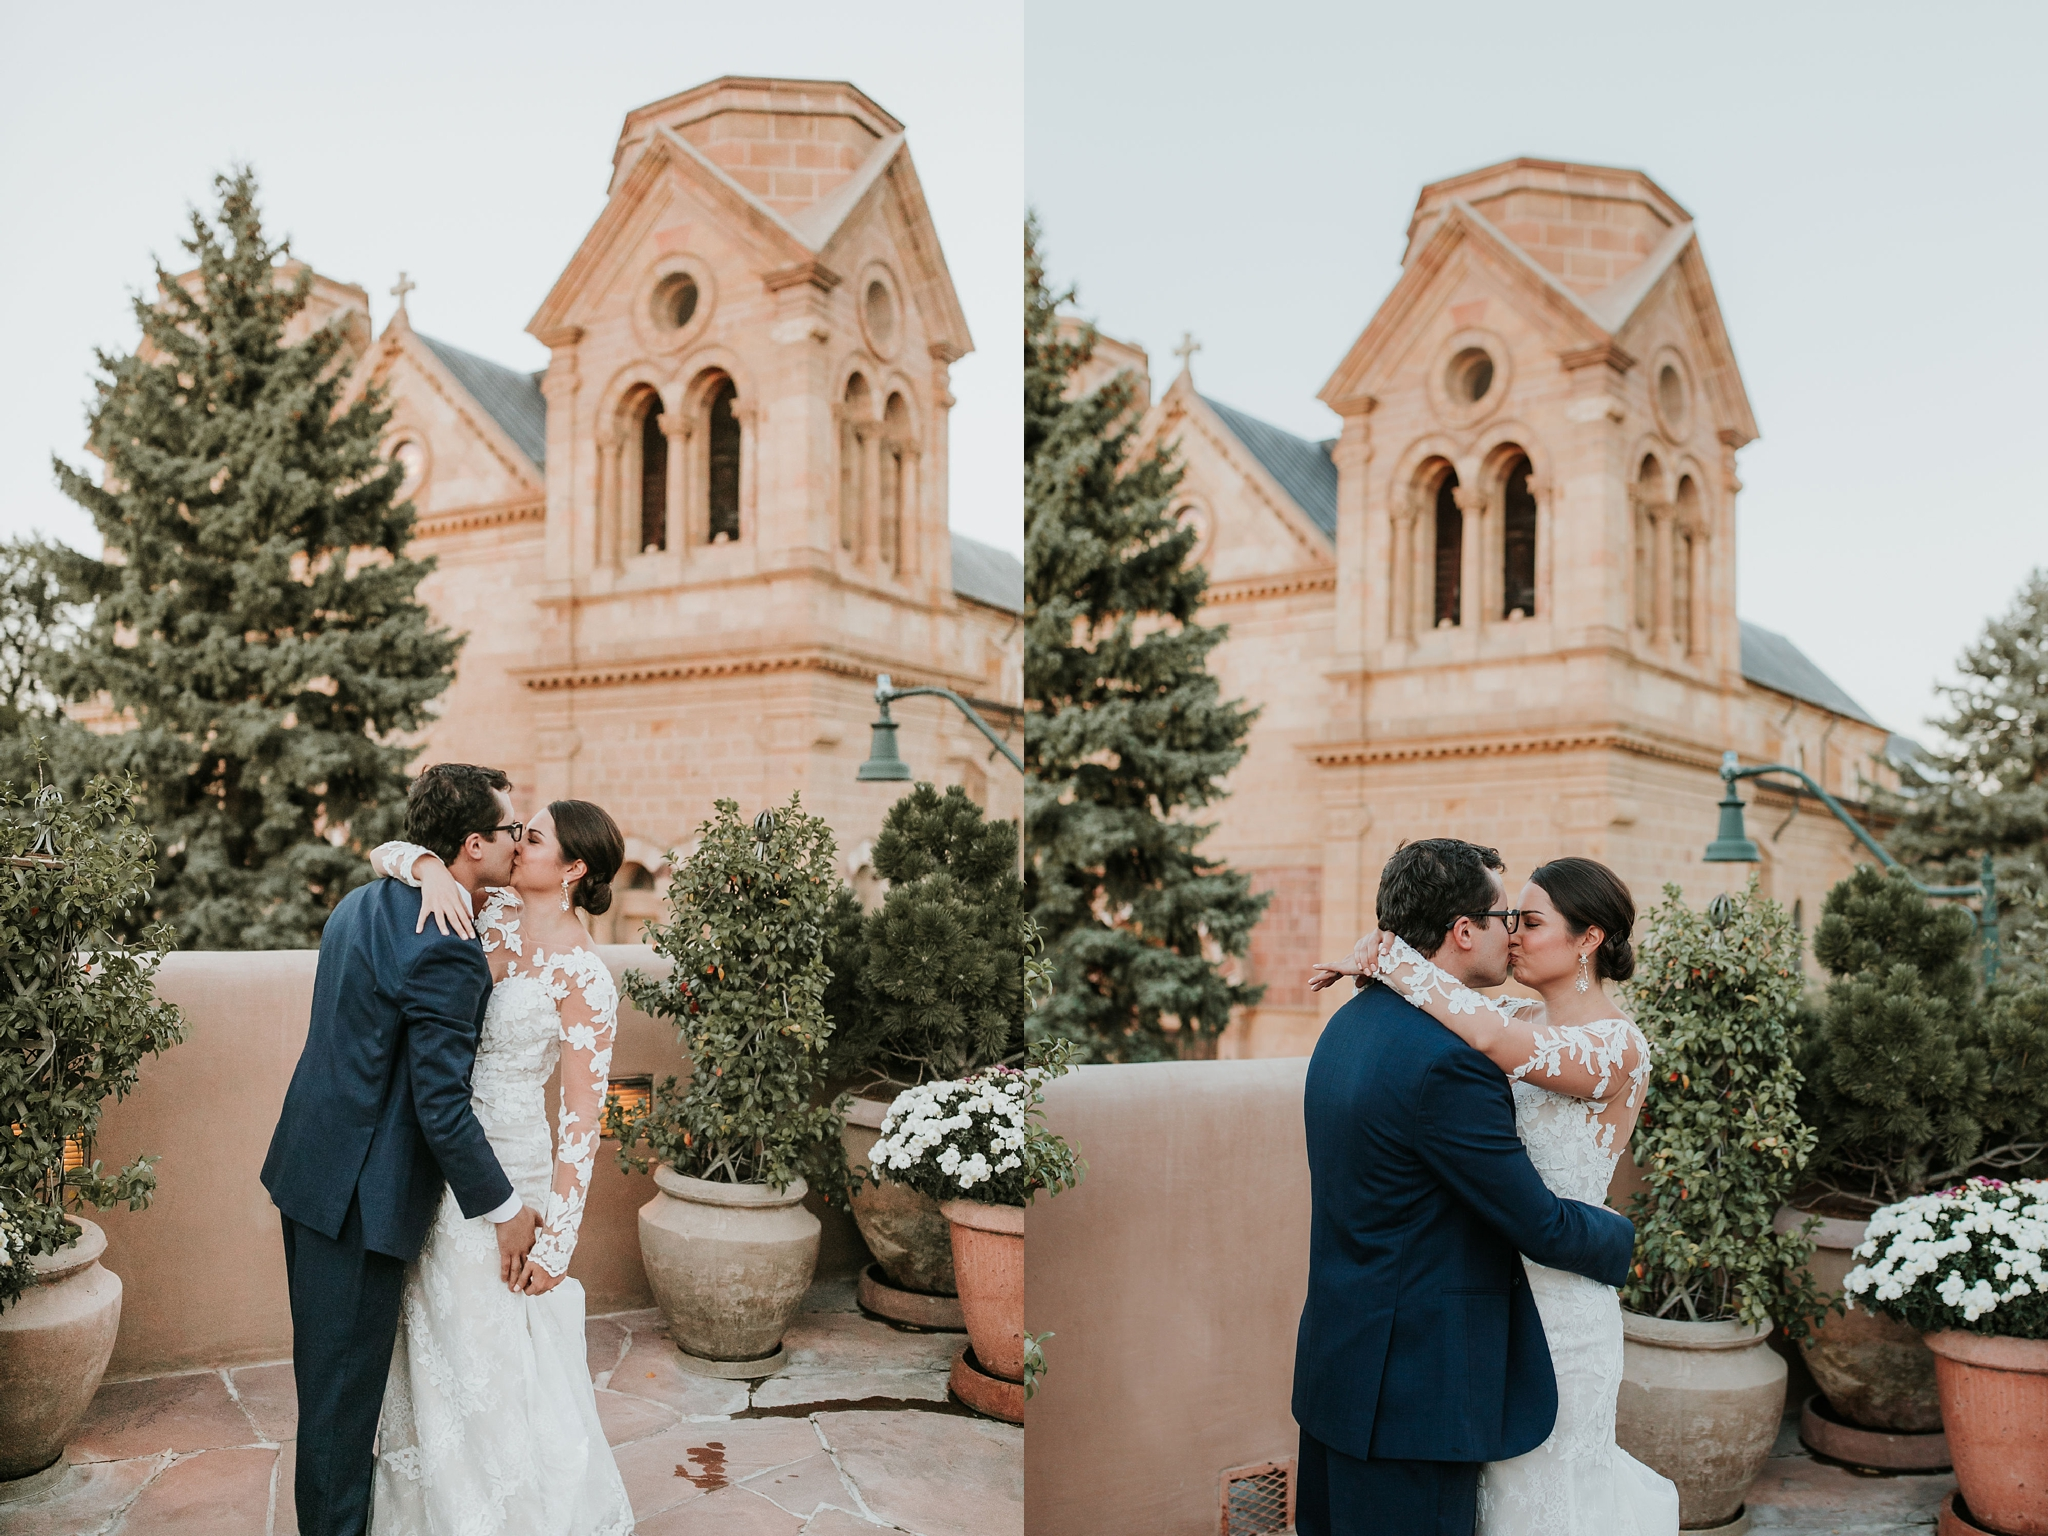 Alicia+lucia+photography+-+albuquerque+wedding+photographer+-+santa+fe+wedding+photography+-+new+mexico+wedding+photographer+-+new+mexico+wedding+-+engagement+-+santa+fe+wedding+-+la+fonda+on+the+plaza+-+la+fonda+wedding_0016.jpg